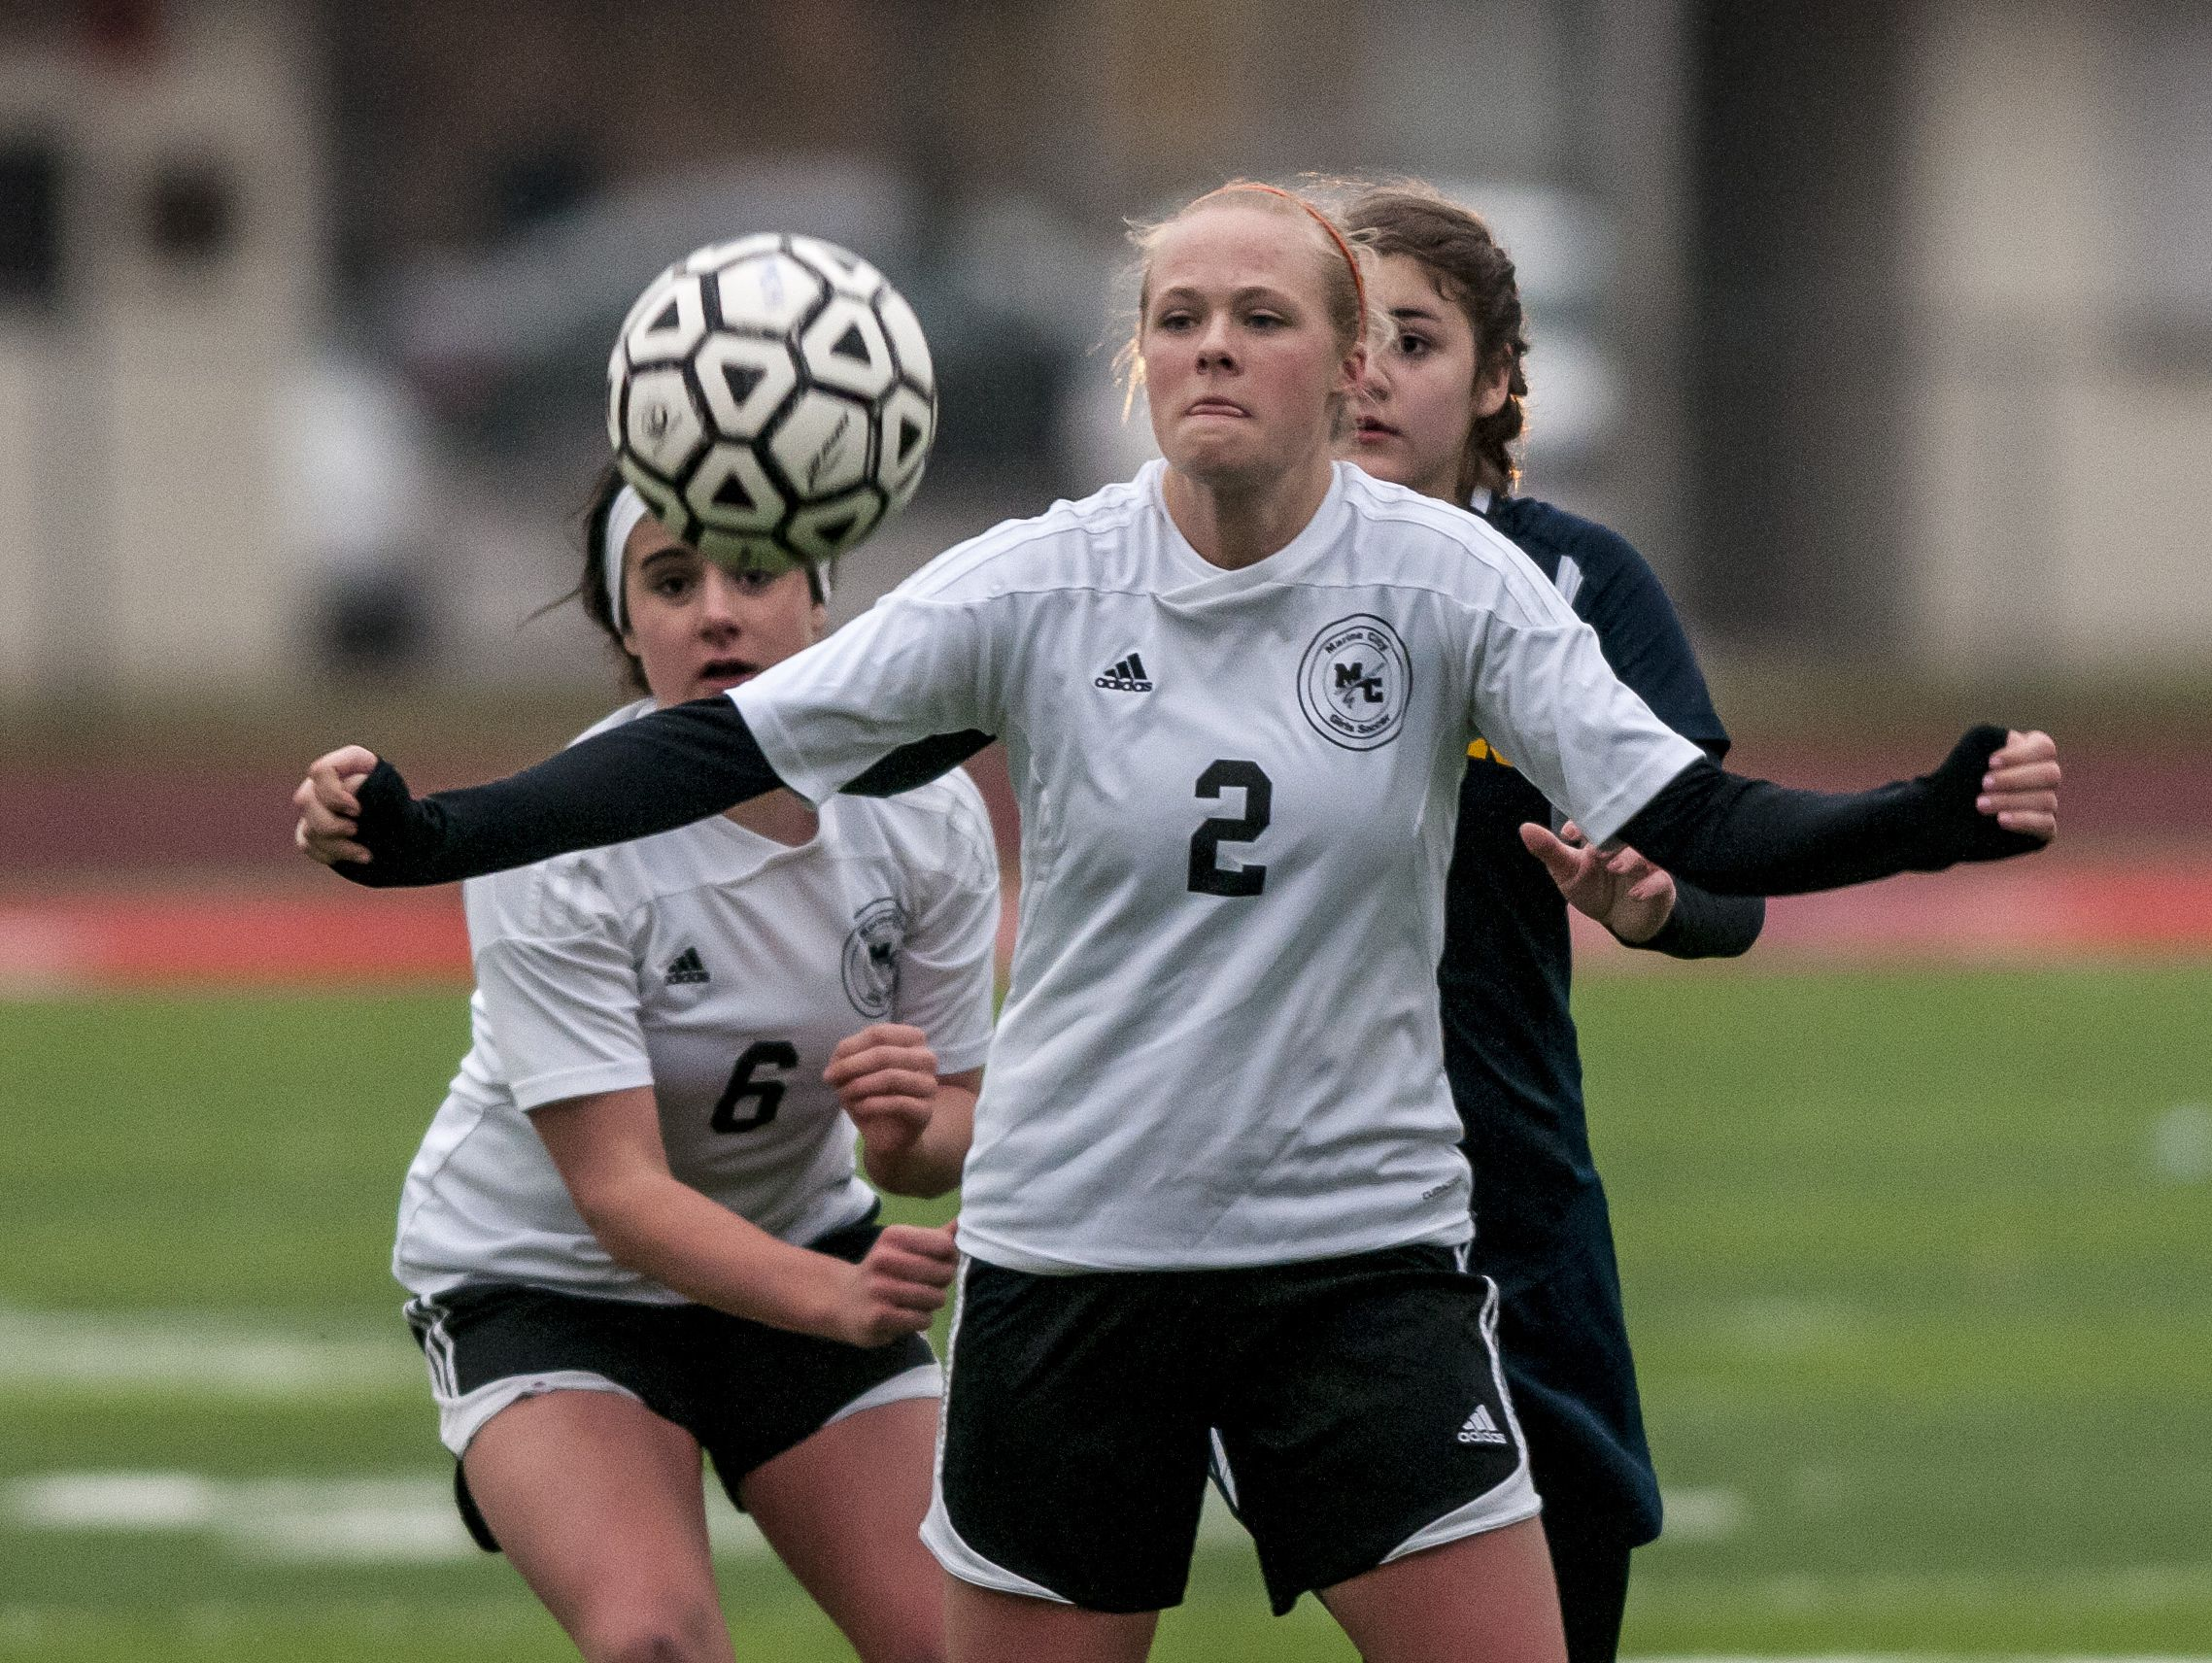 Marine City senior Bailee Gunderson receives a pass during a soccer game Wednesday, March 23, 2016 at East China Stadium.